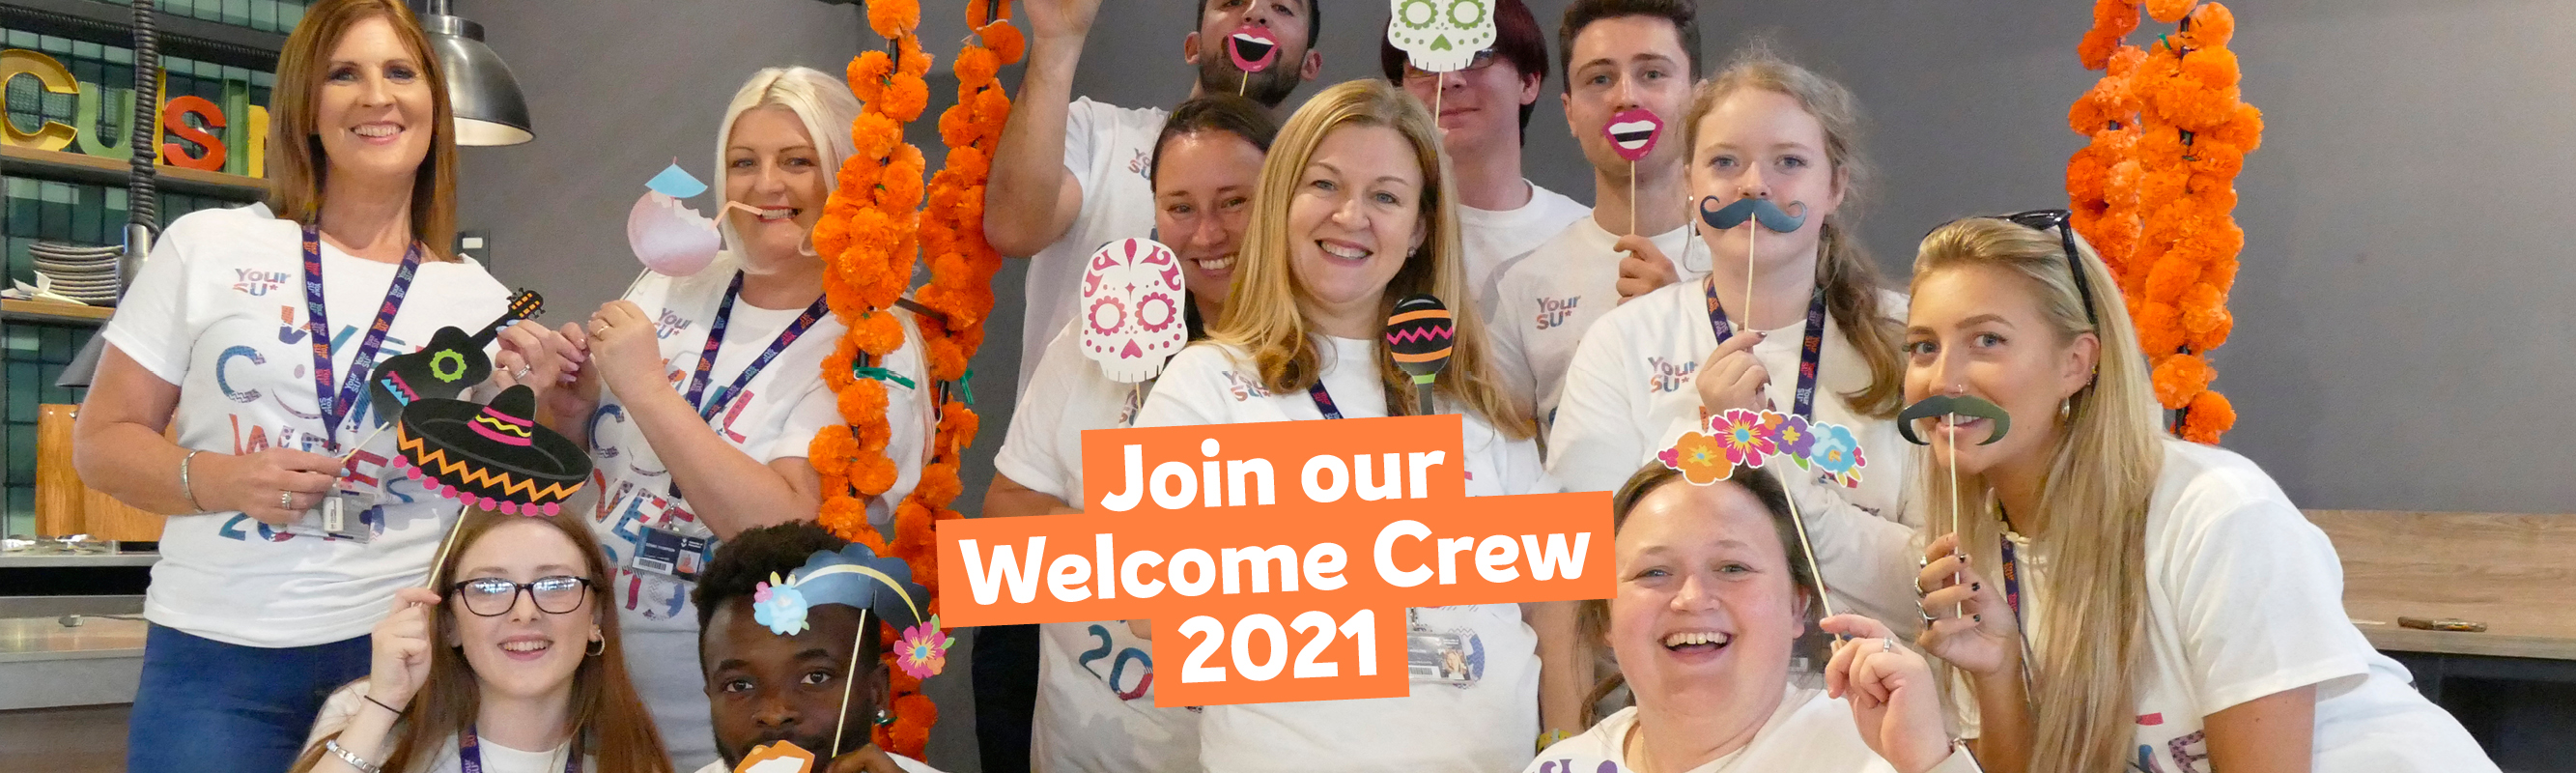 Full width banner welcome crew 2021